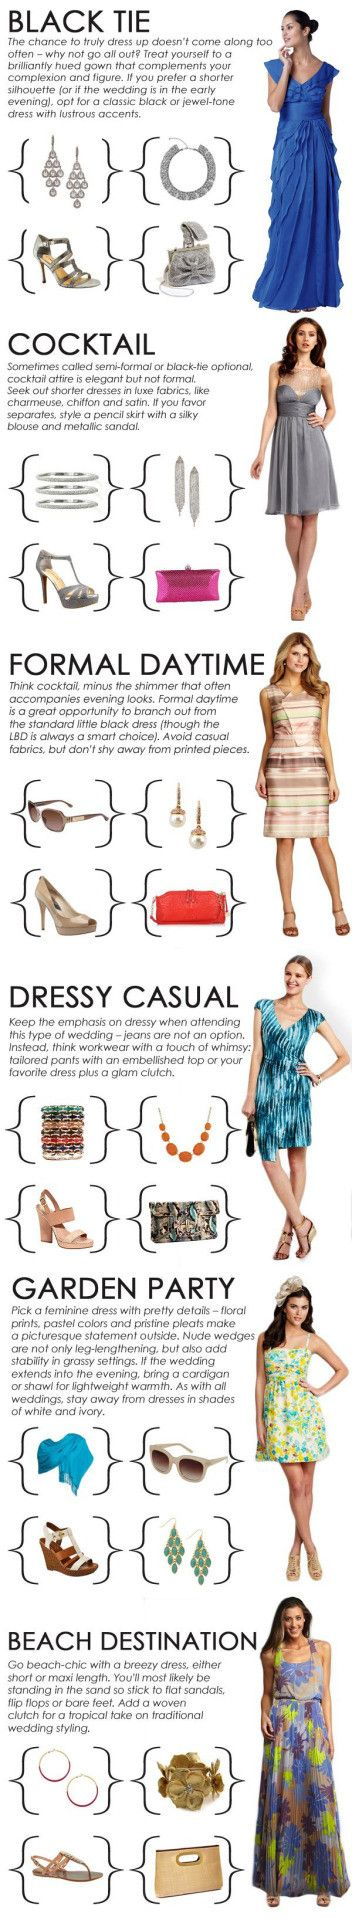 Fashion-Conscious? 20 Simple Charts for Woman Study